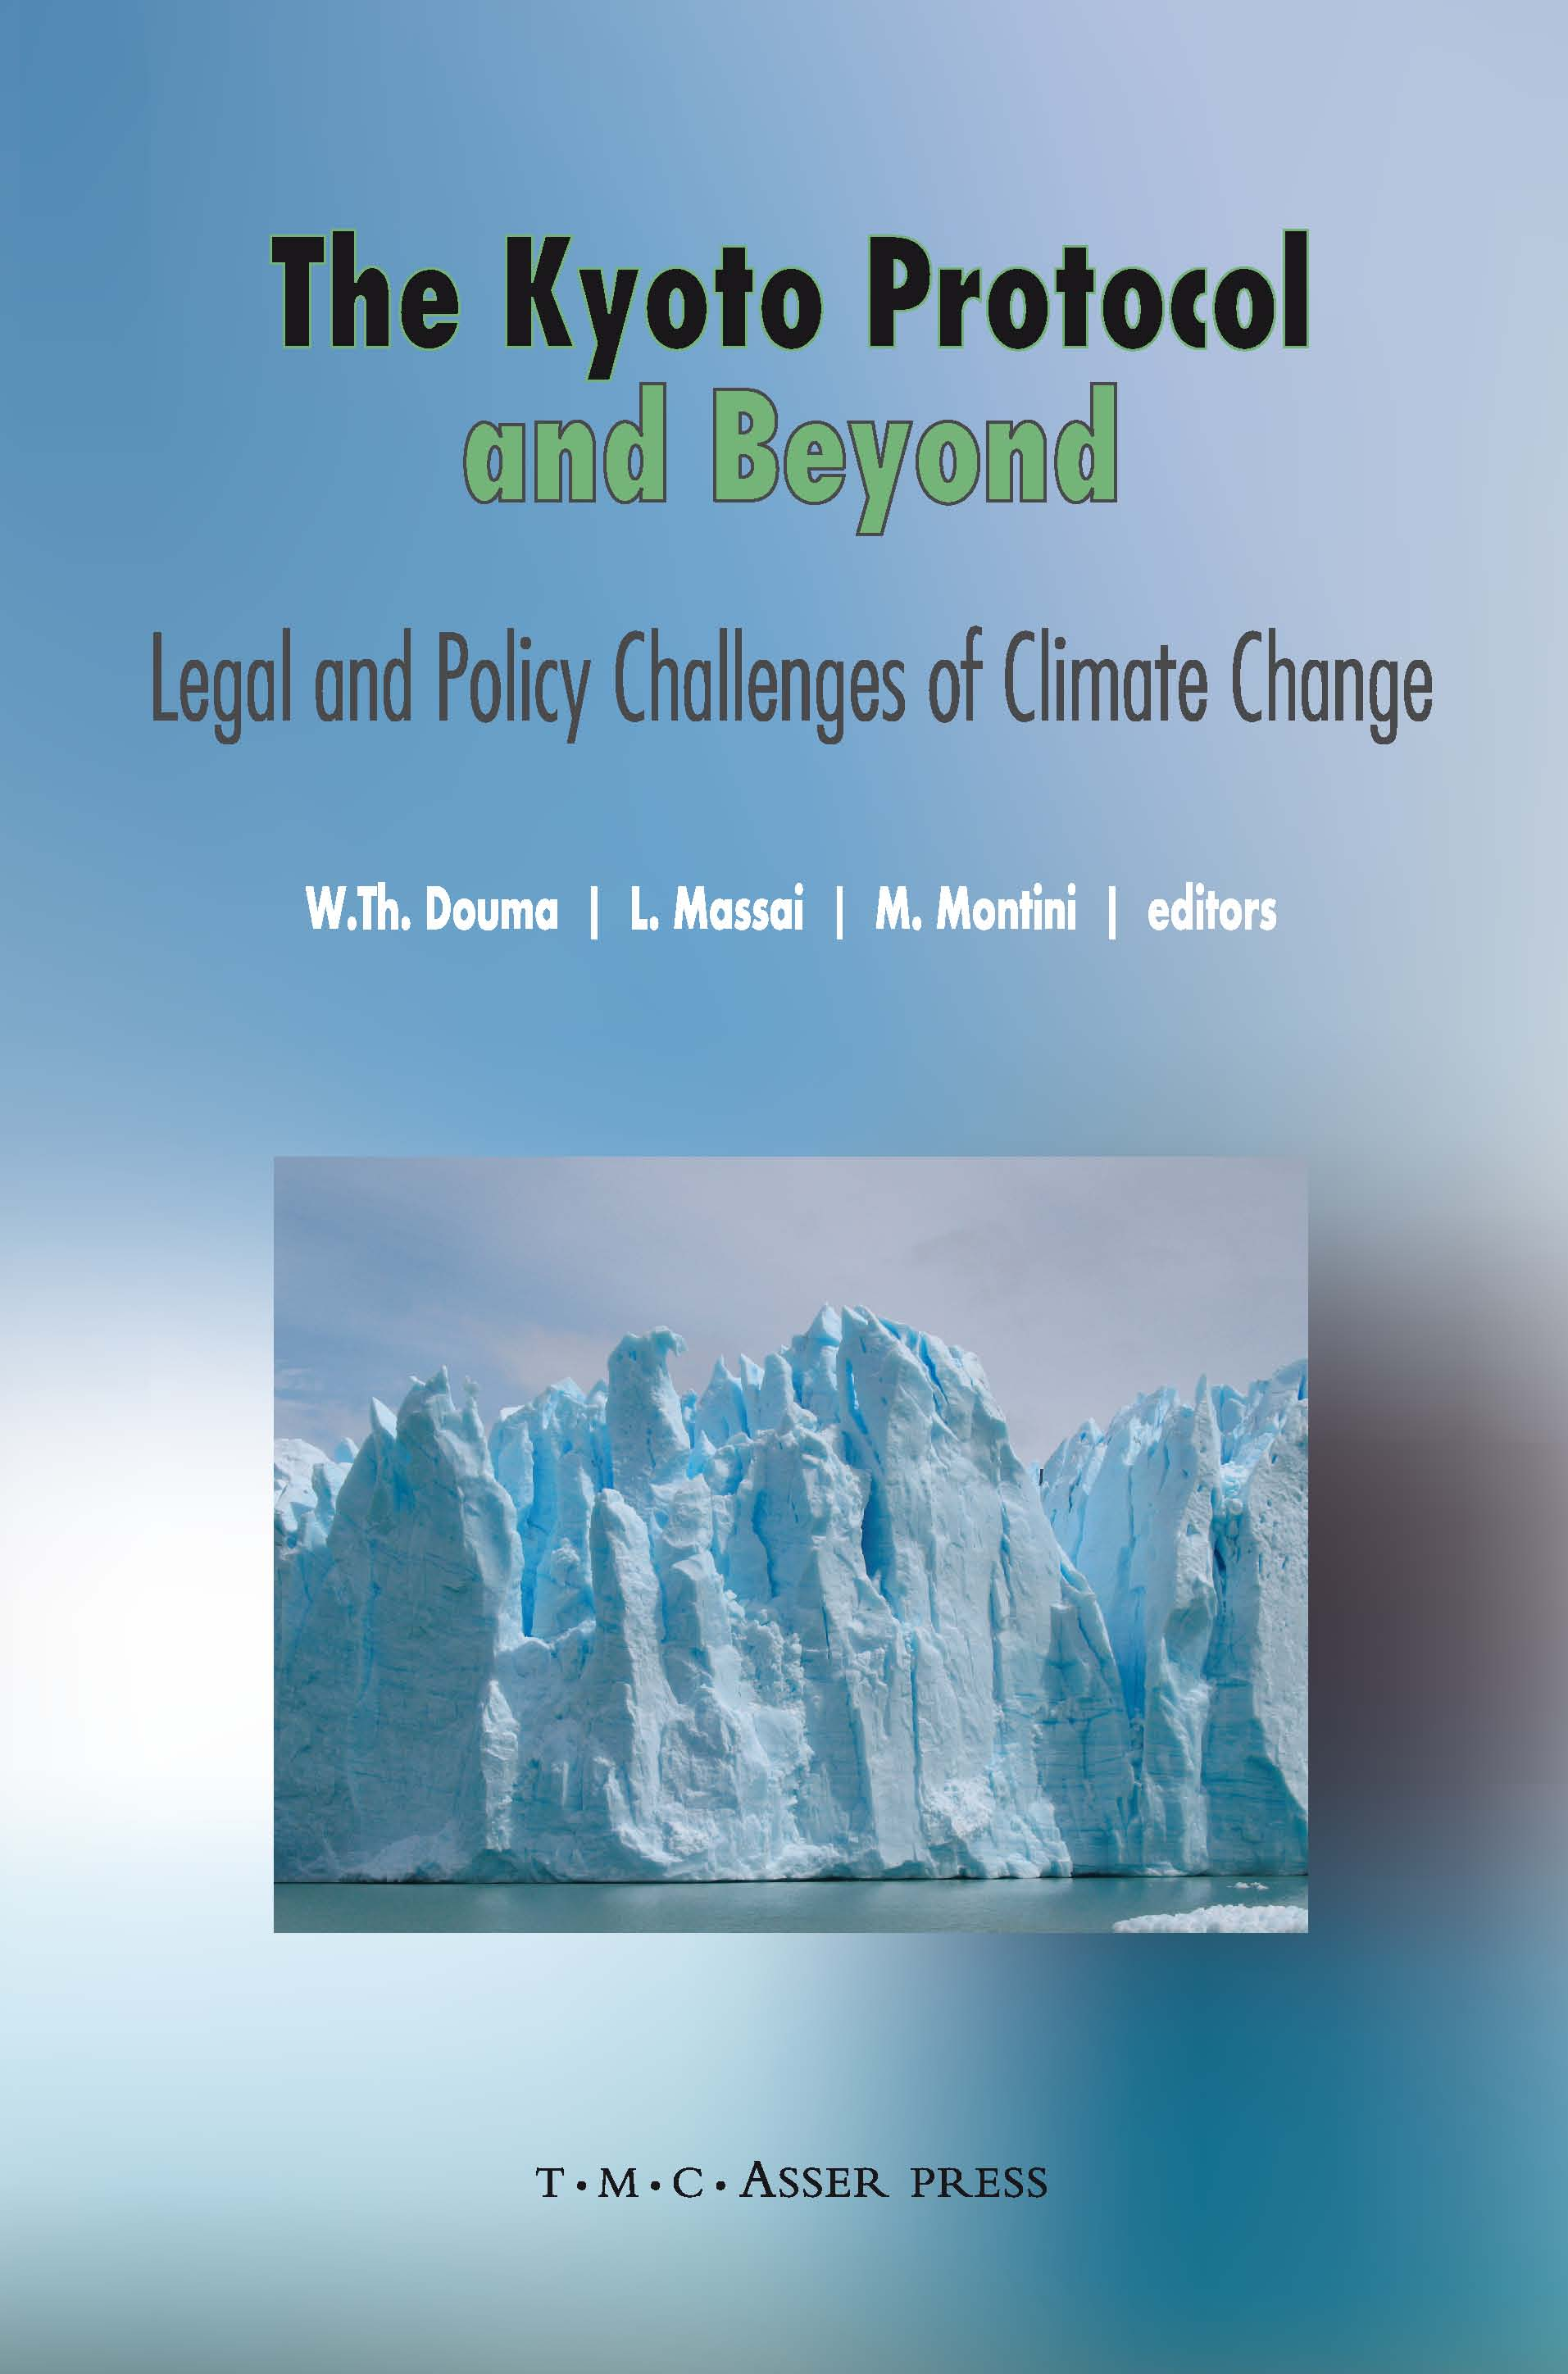 The Kyoto Protocol and Beyond - Legal and Policy Challenges of Climate Change